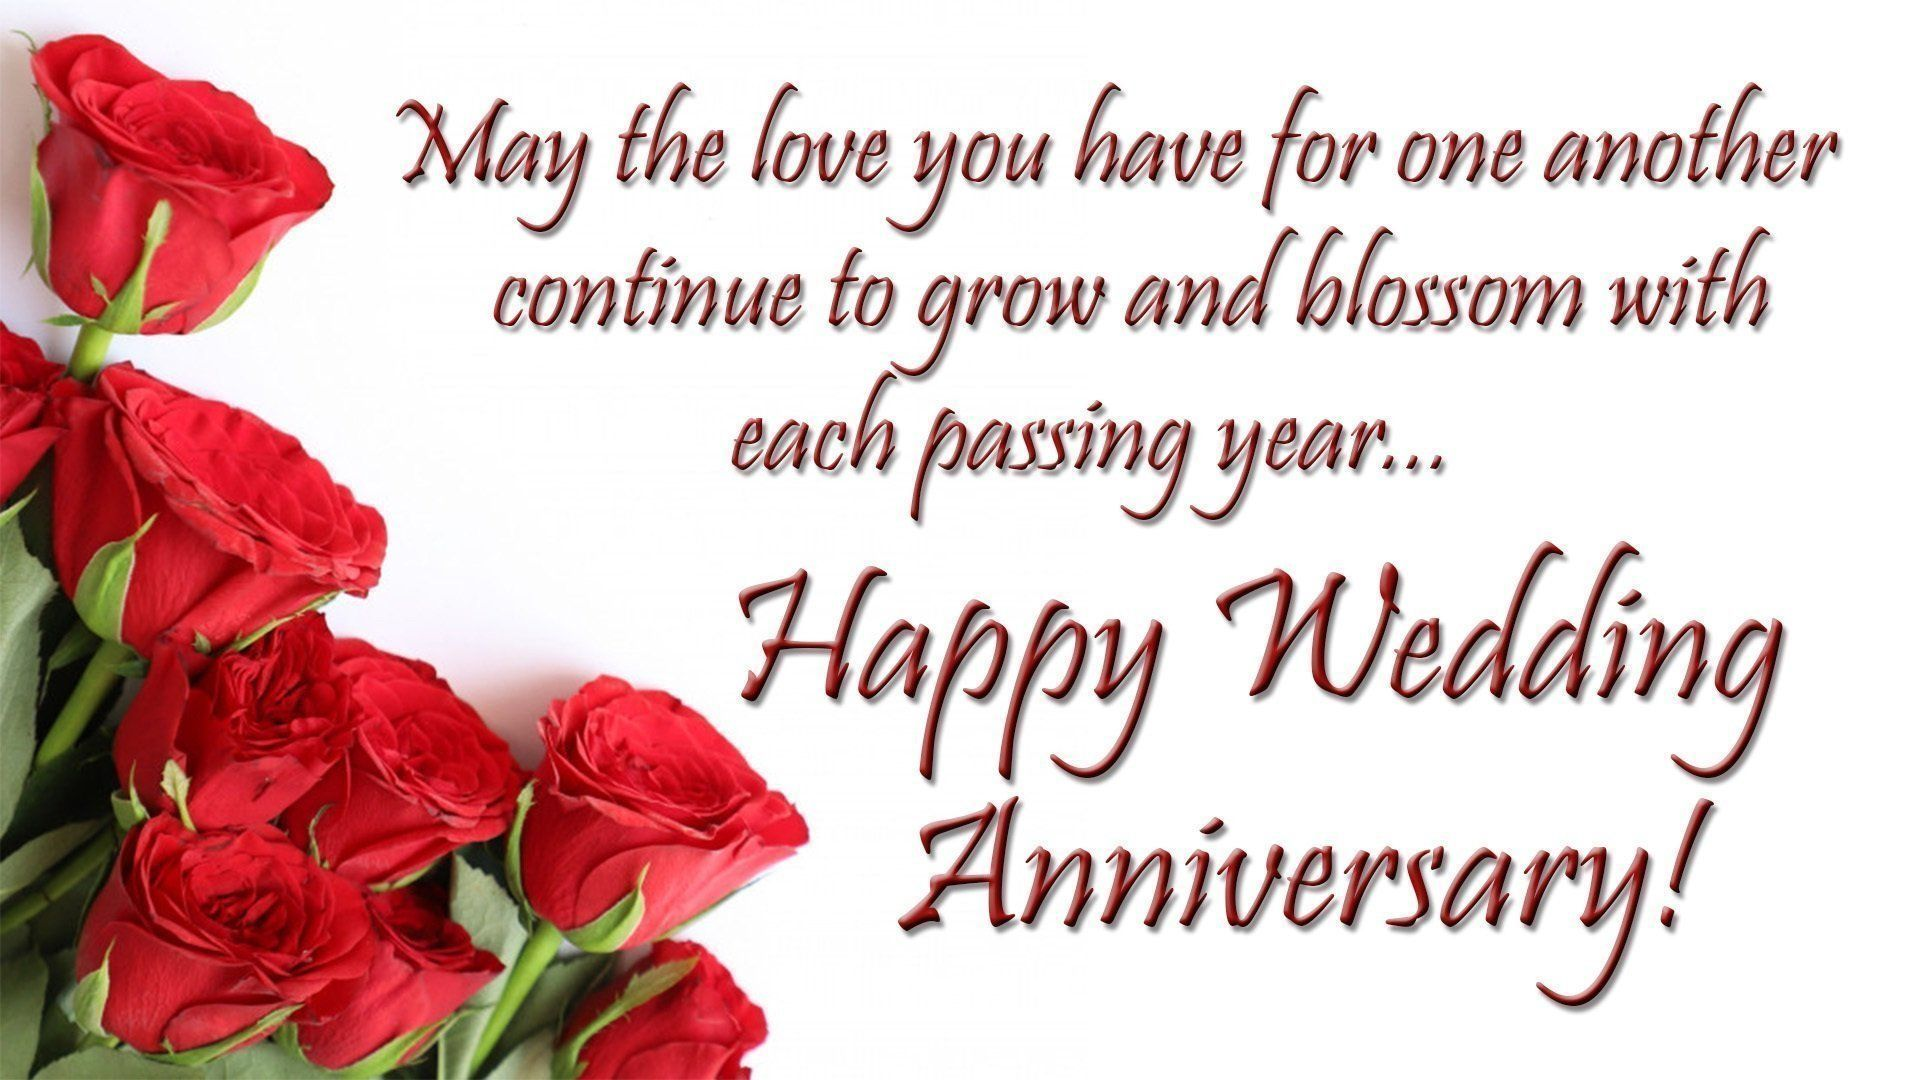 Wishes Happy Wedding Anniversary Best Wishes Saying Image Wallpaper Anniversary Happ Happy Wedding Wedding Anniversary Wishes Happy Wedding Anniversary Wishes